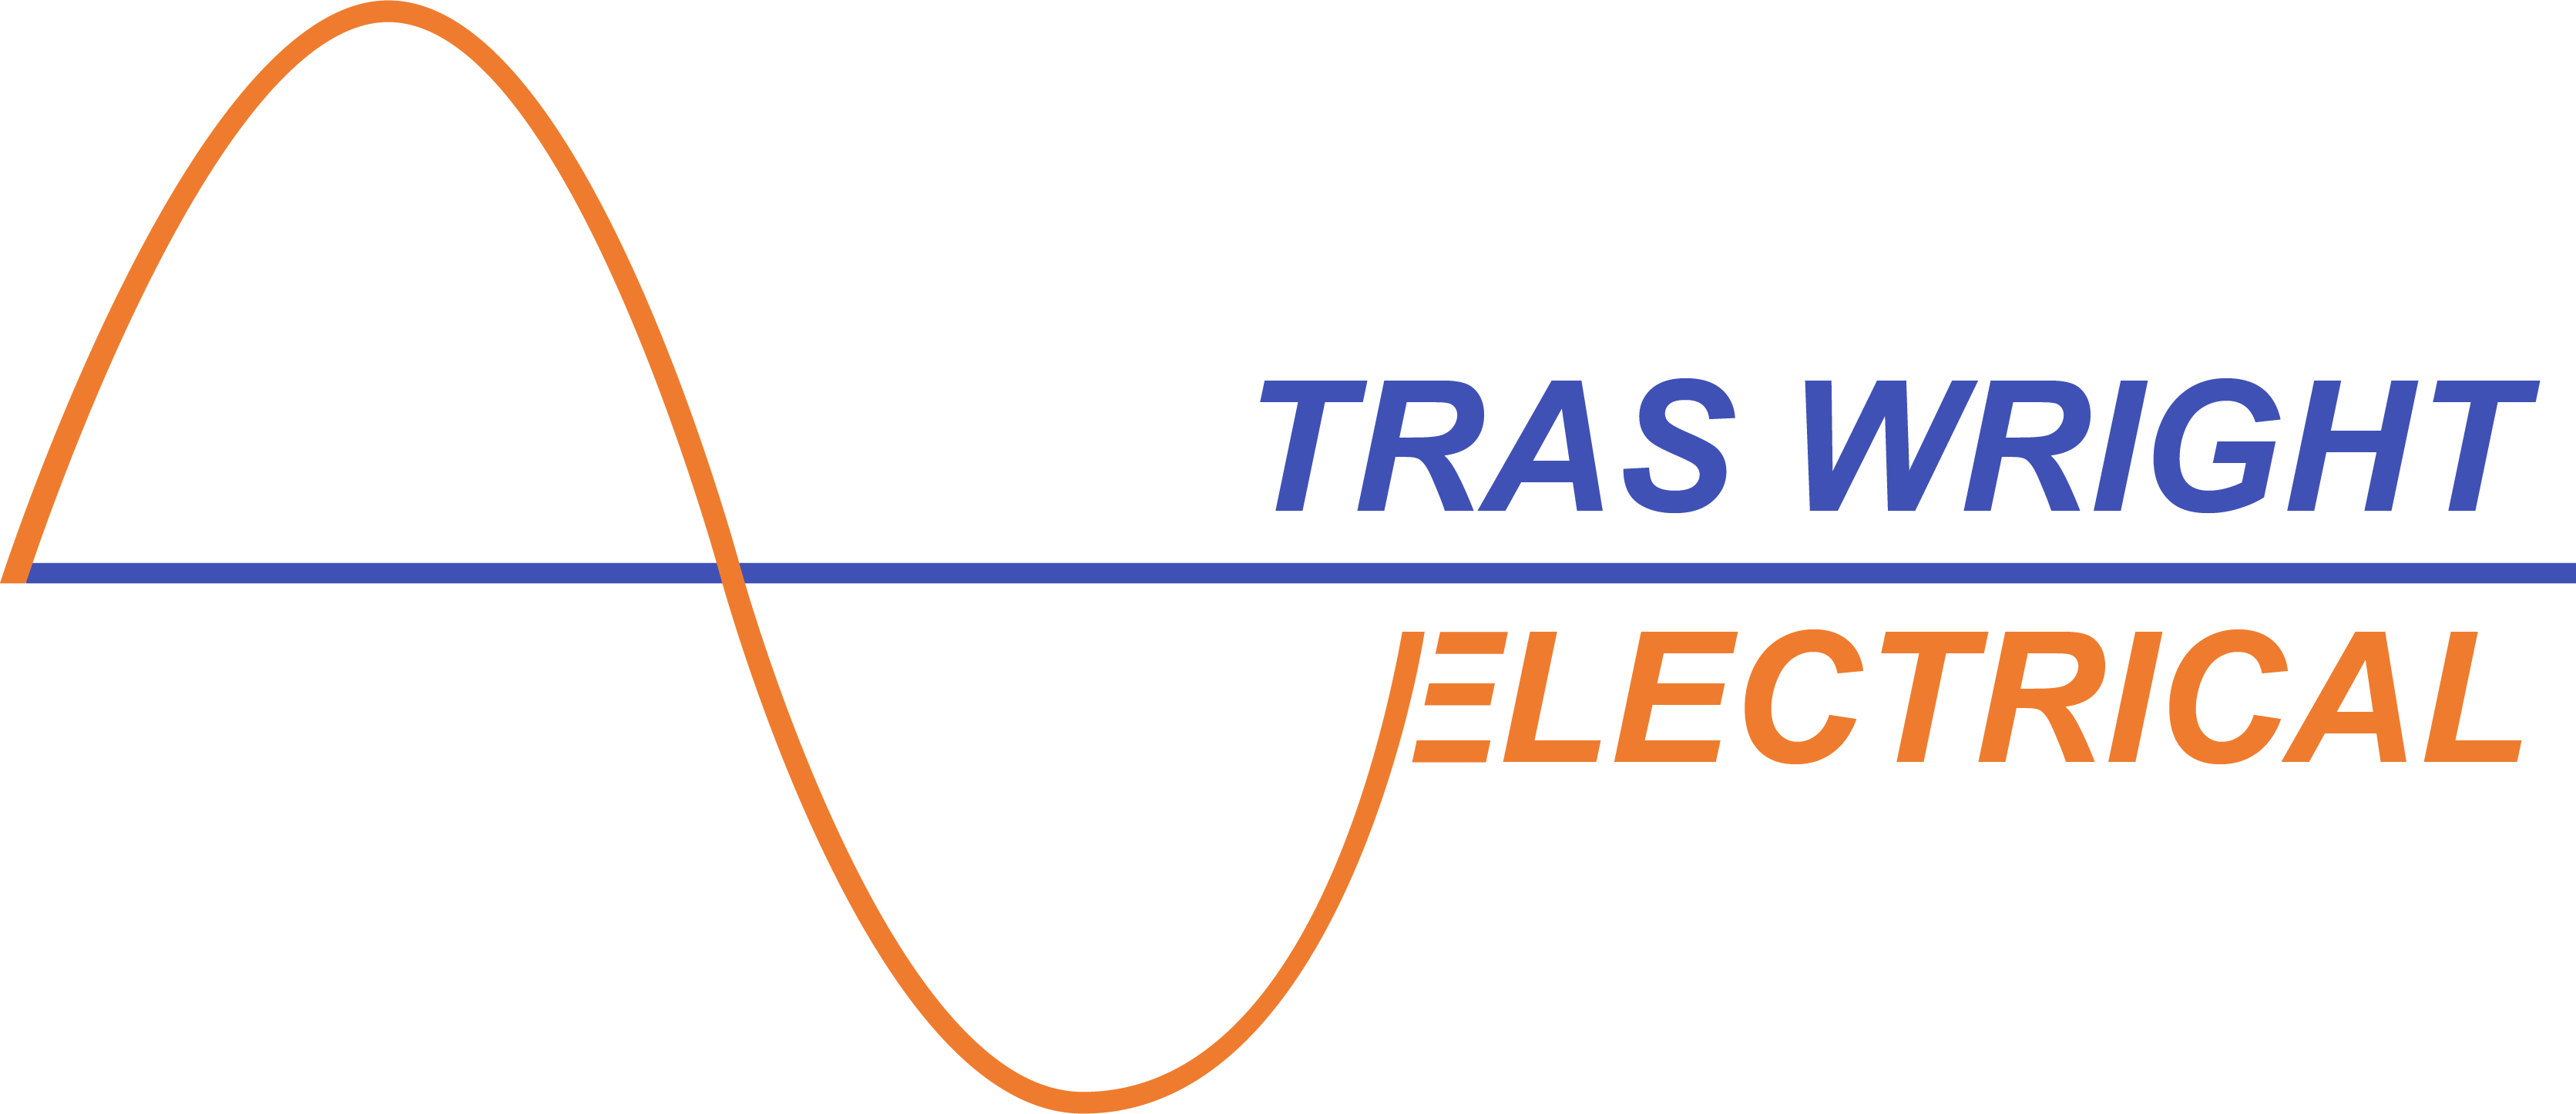 Tras Wright Electrical